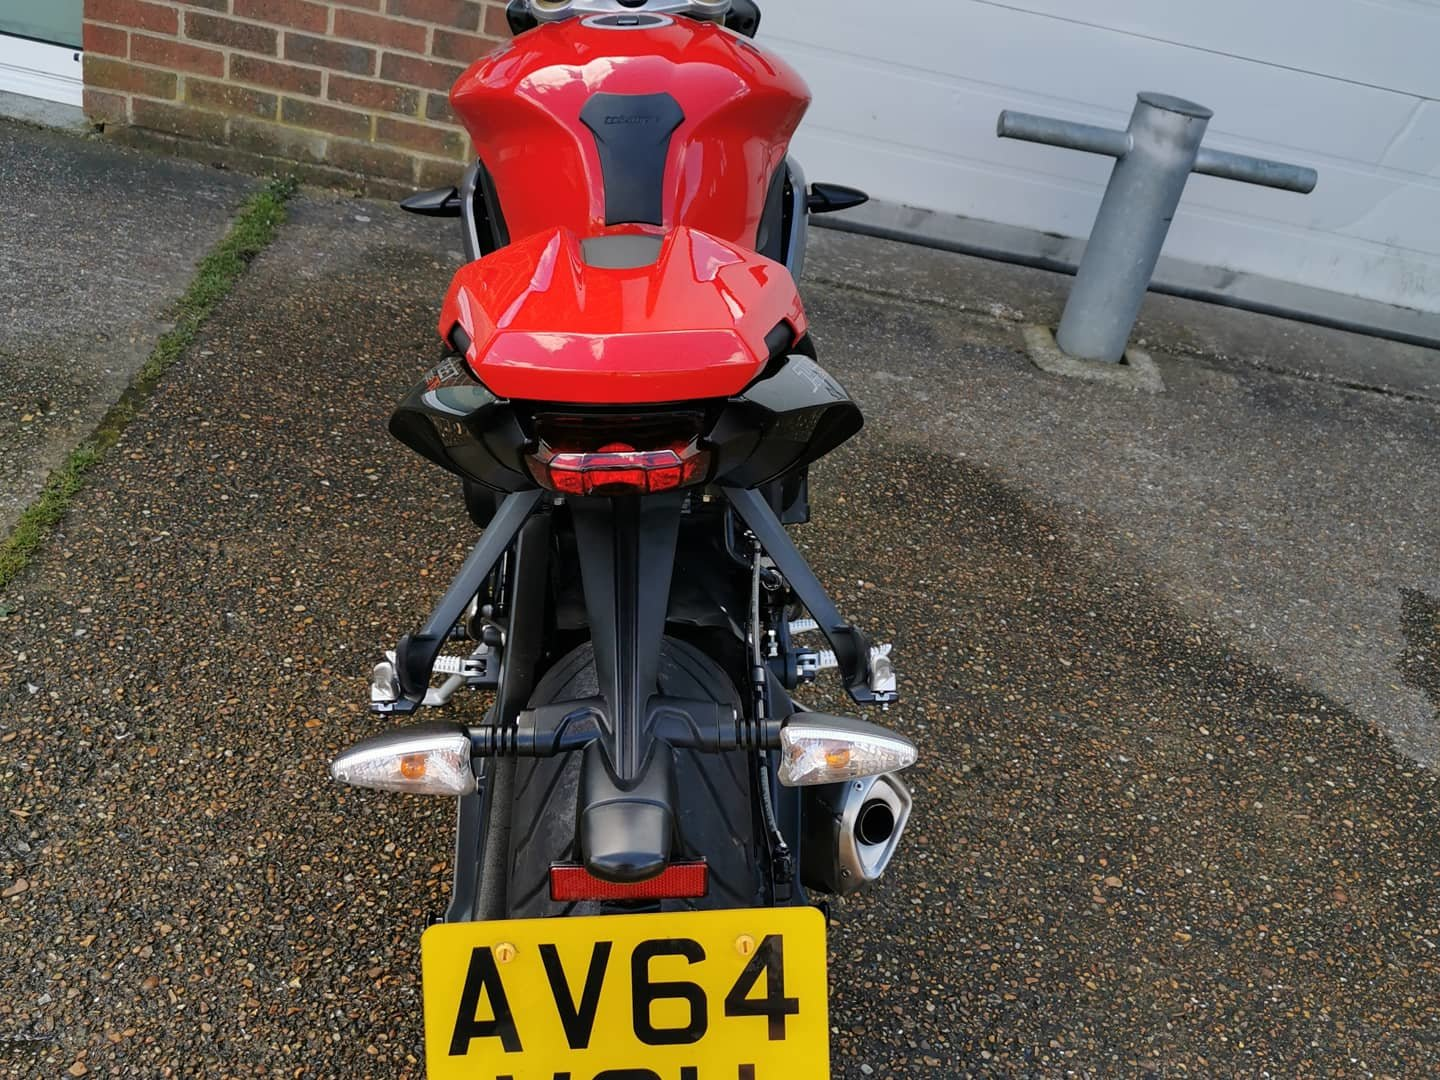 2015-64 Triumph Street triple 675 ABS *low miles* For Sale (picture 7 of 10)